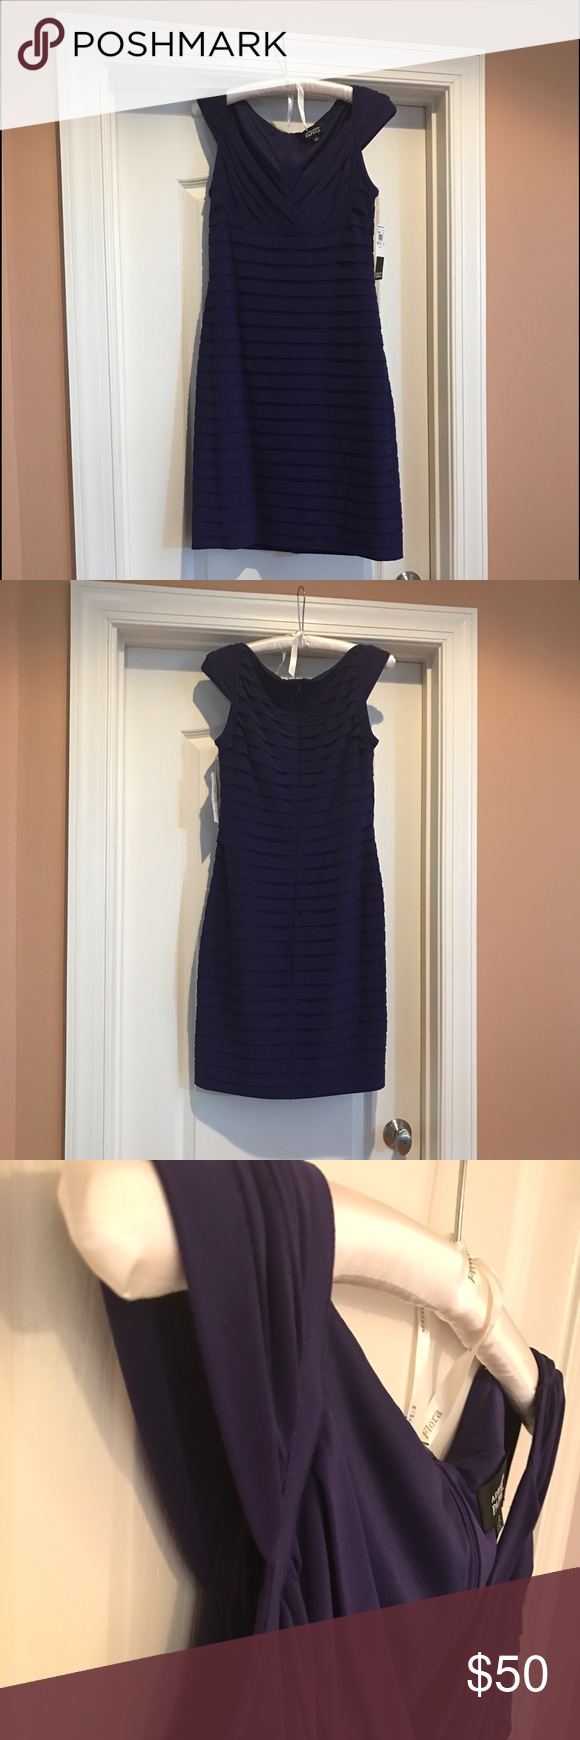 Jassey cocktail dress